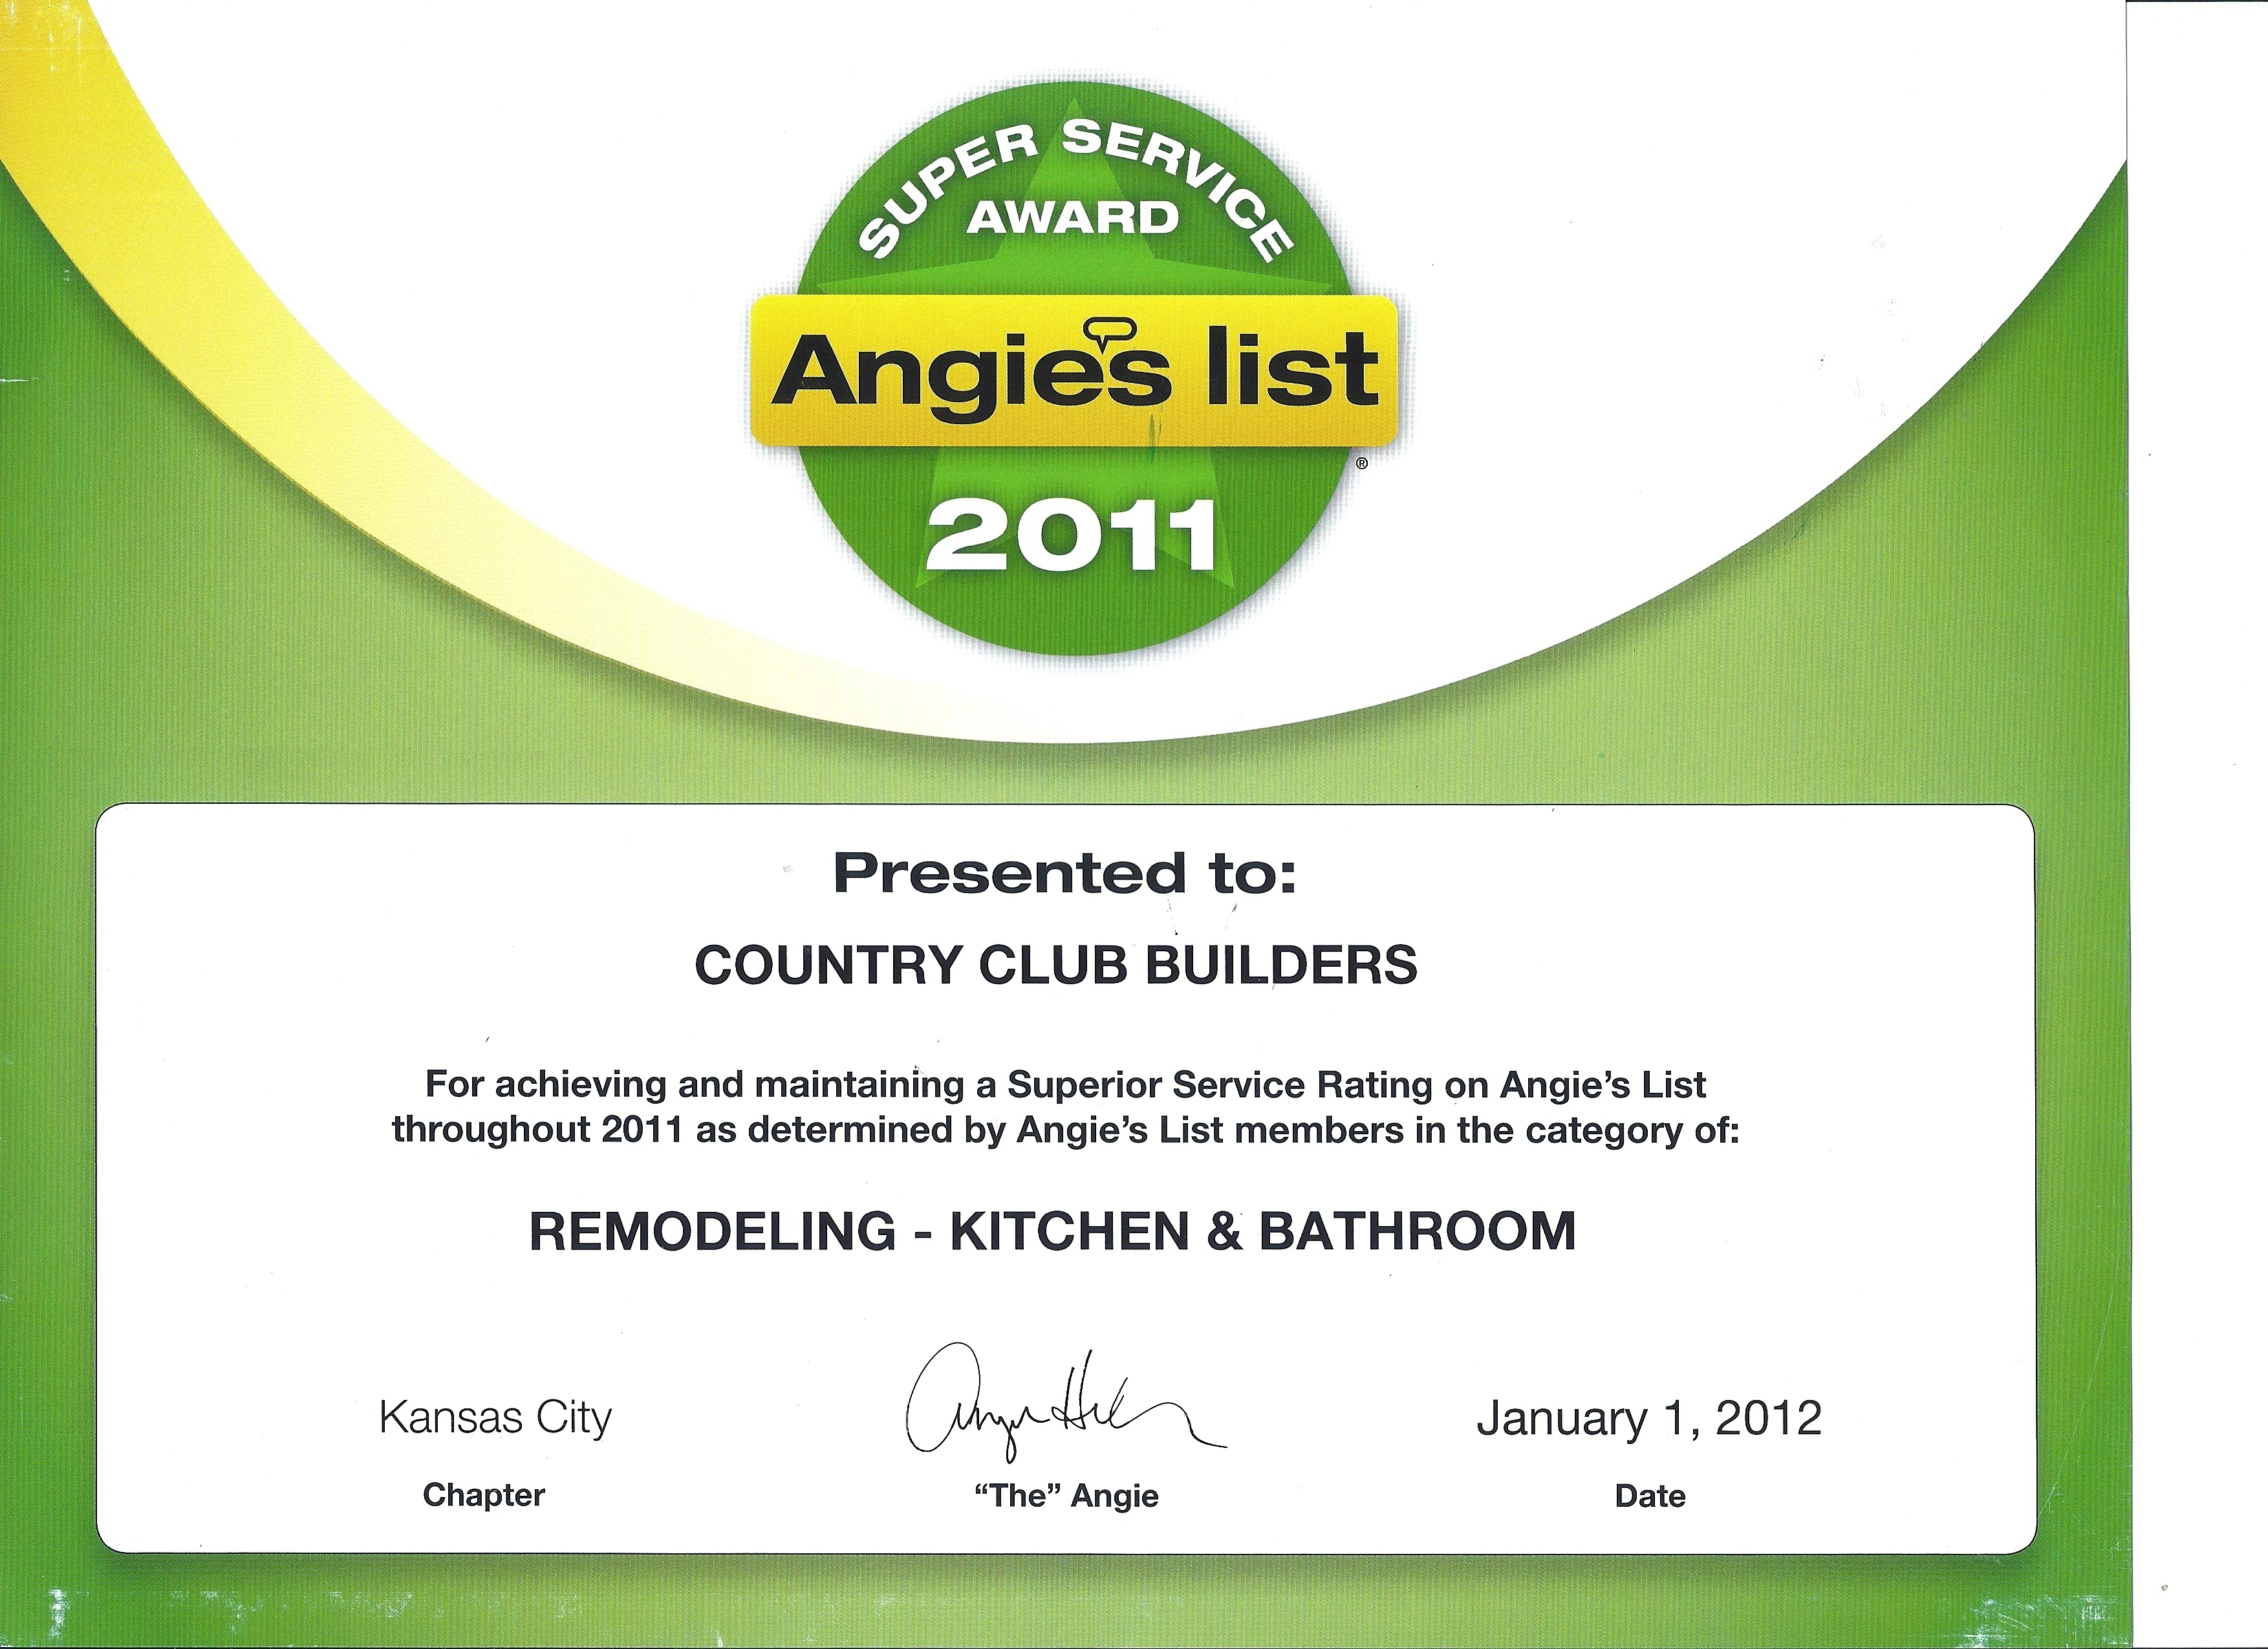 Certification country club builders angies list membership for country club builders xflitez Images